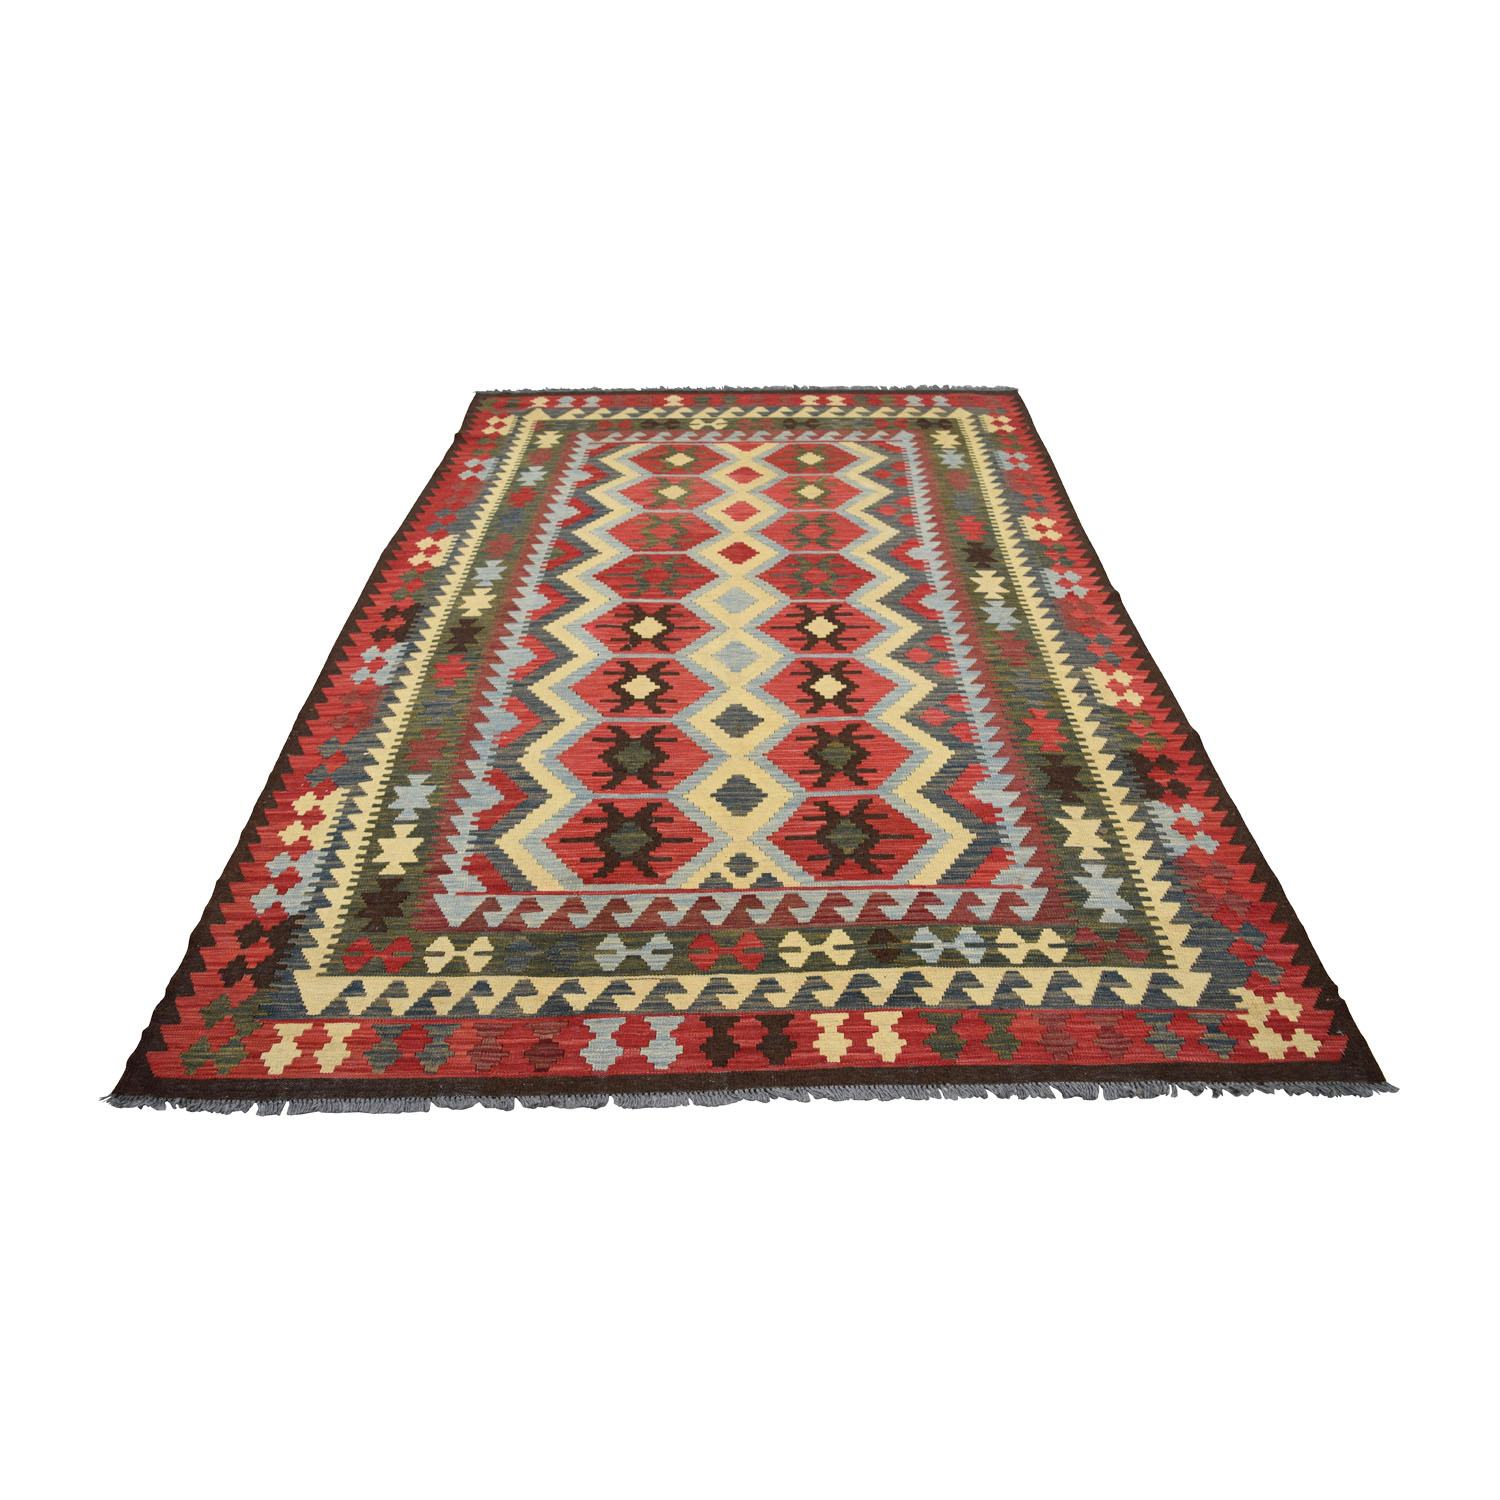 47% off - anthropologie anthropologie hand knotted arasta rug / decor